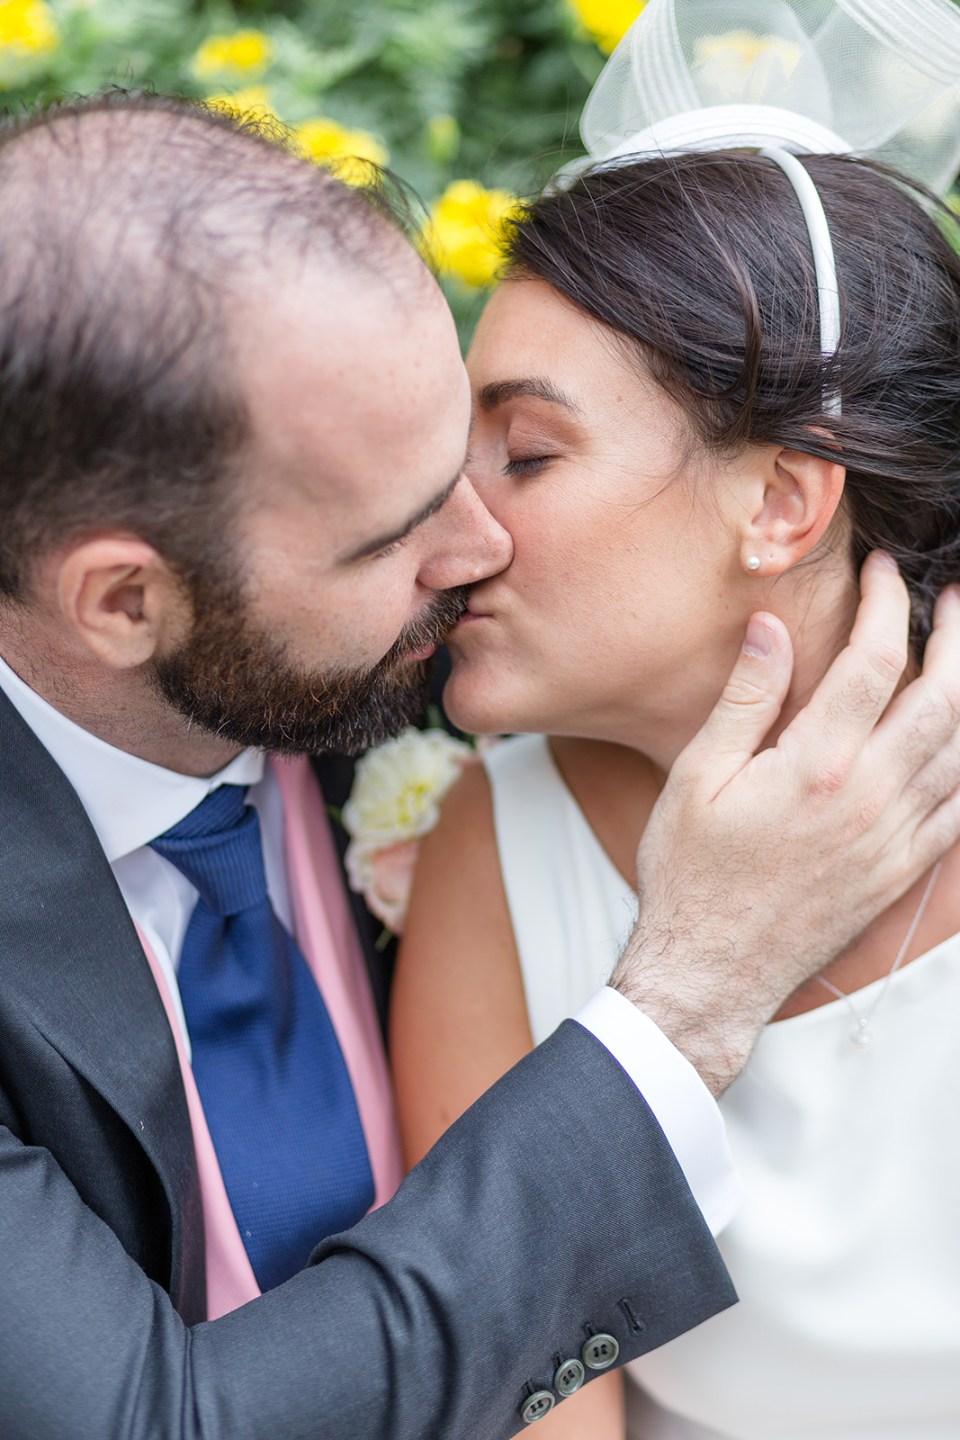 bride and groom kissing while his hand is on her cheek